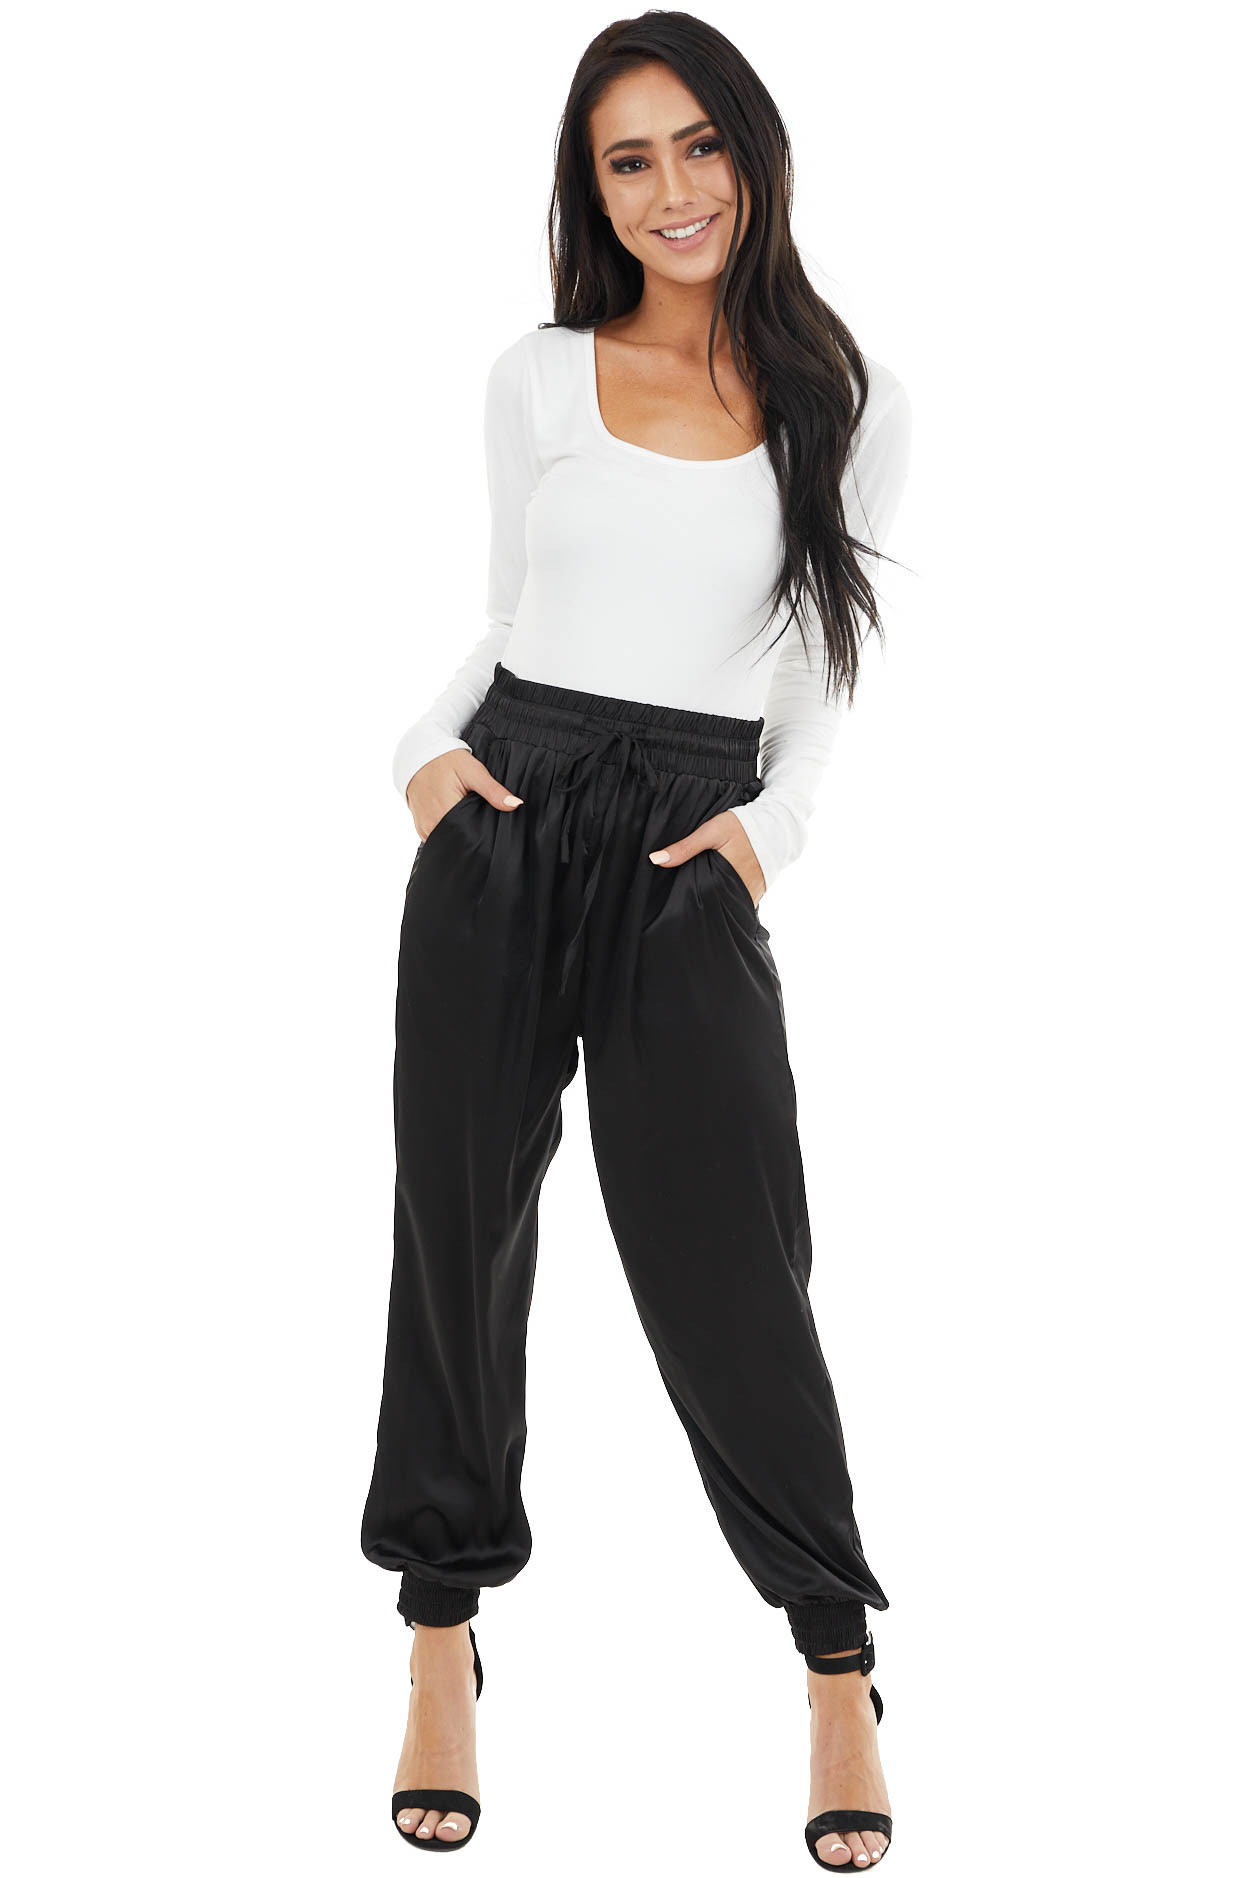 Black Satin Woven Joggers with Elastic Waist and Pockets